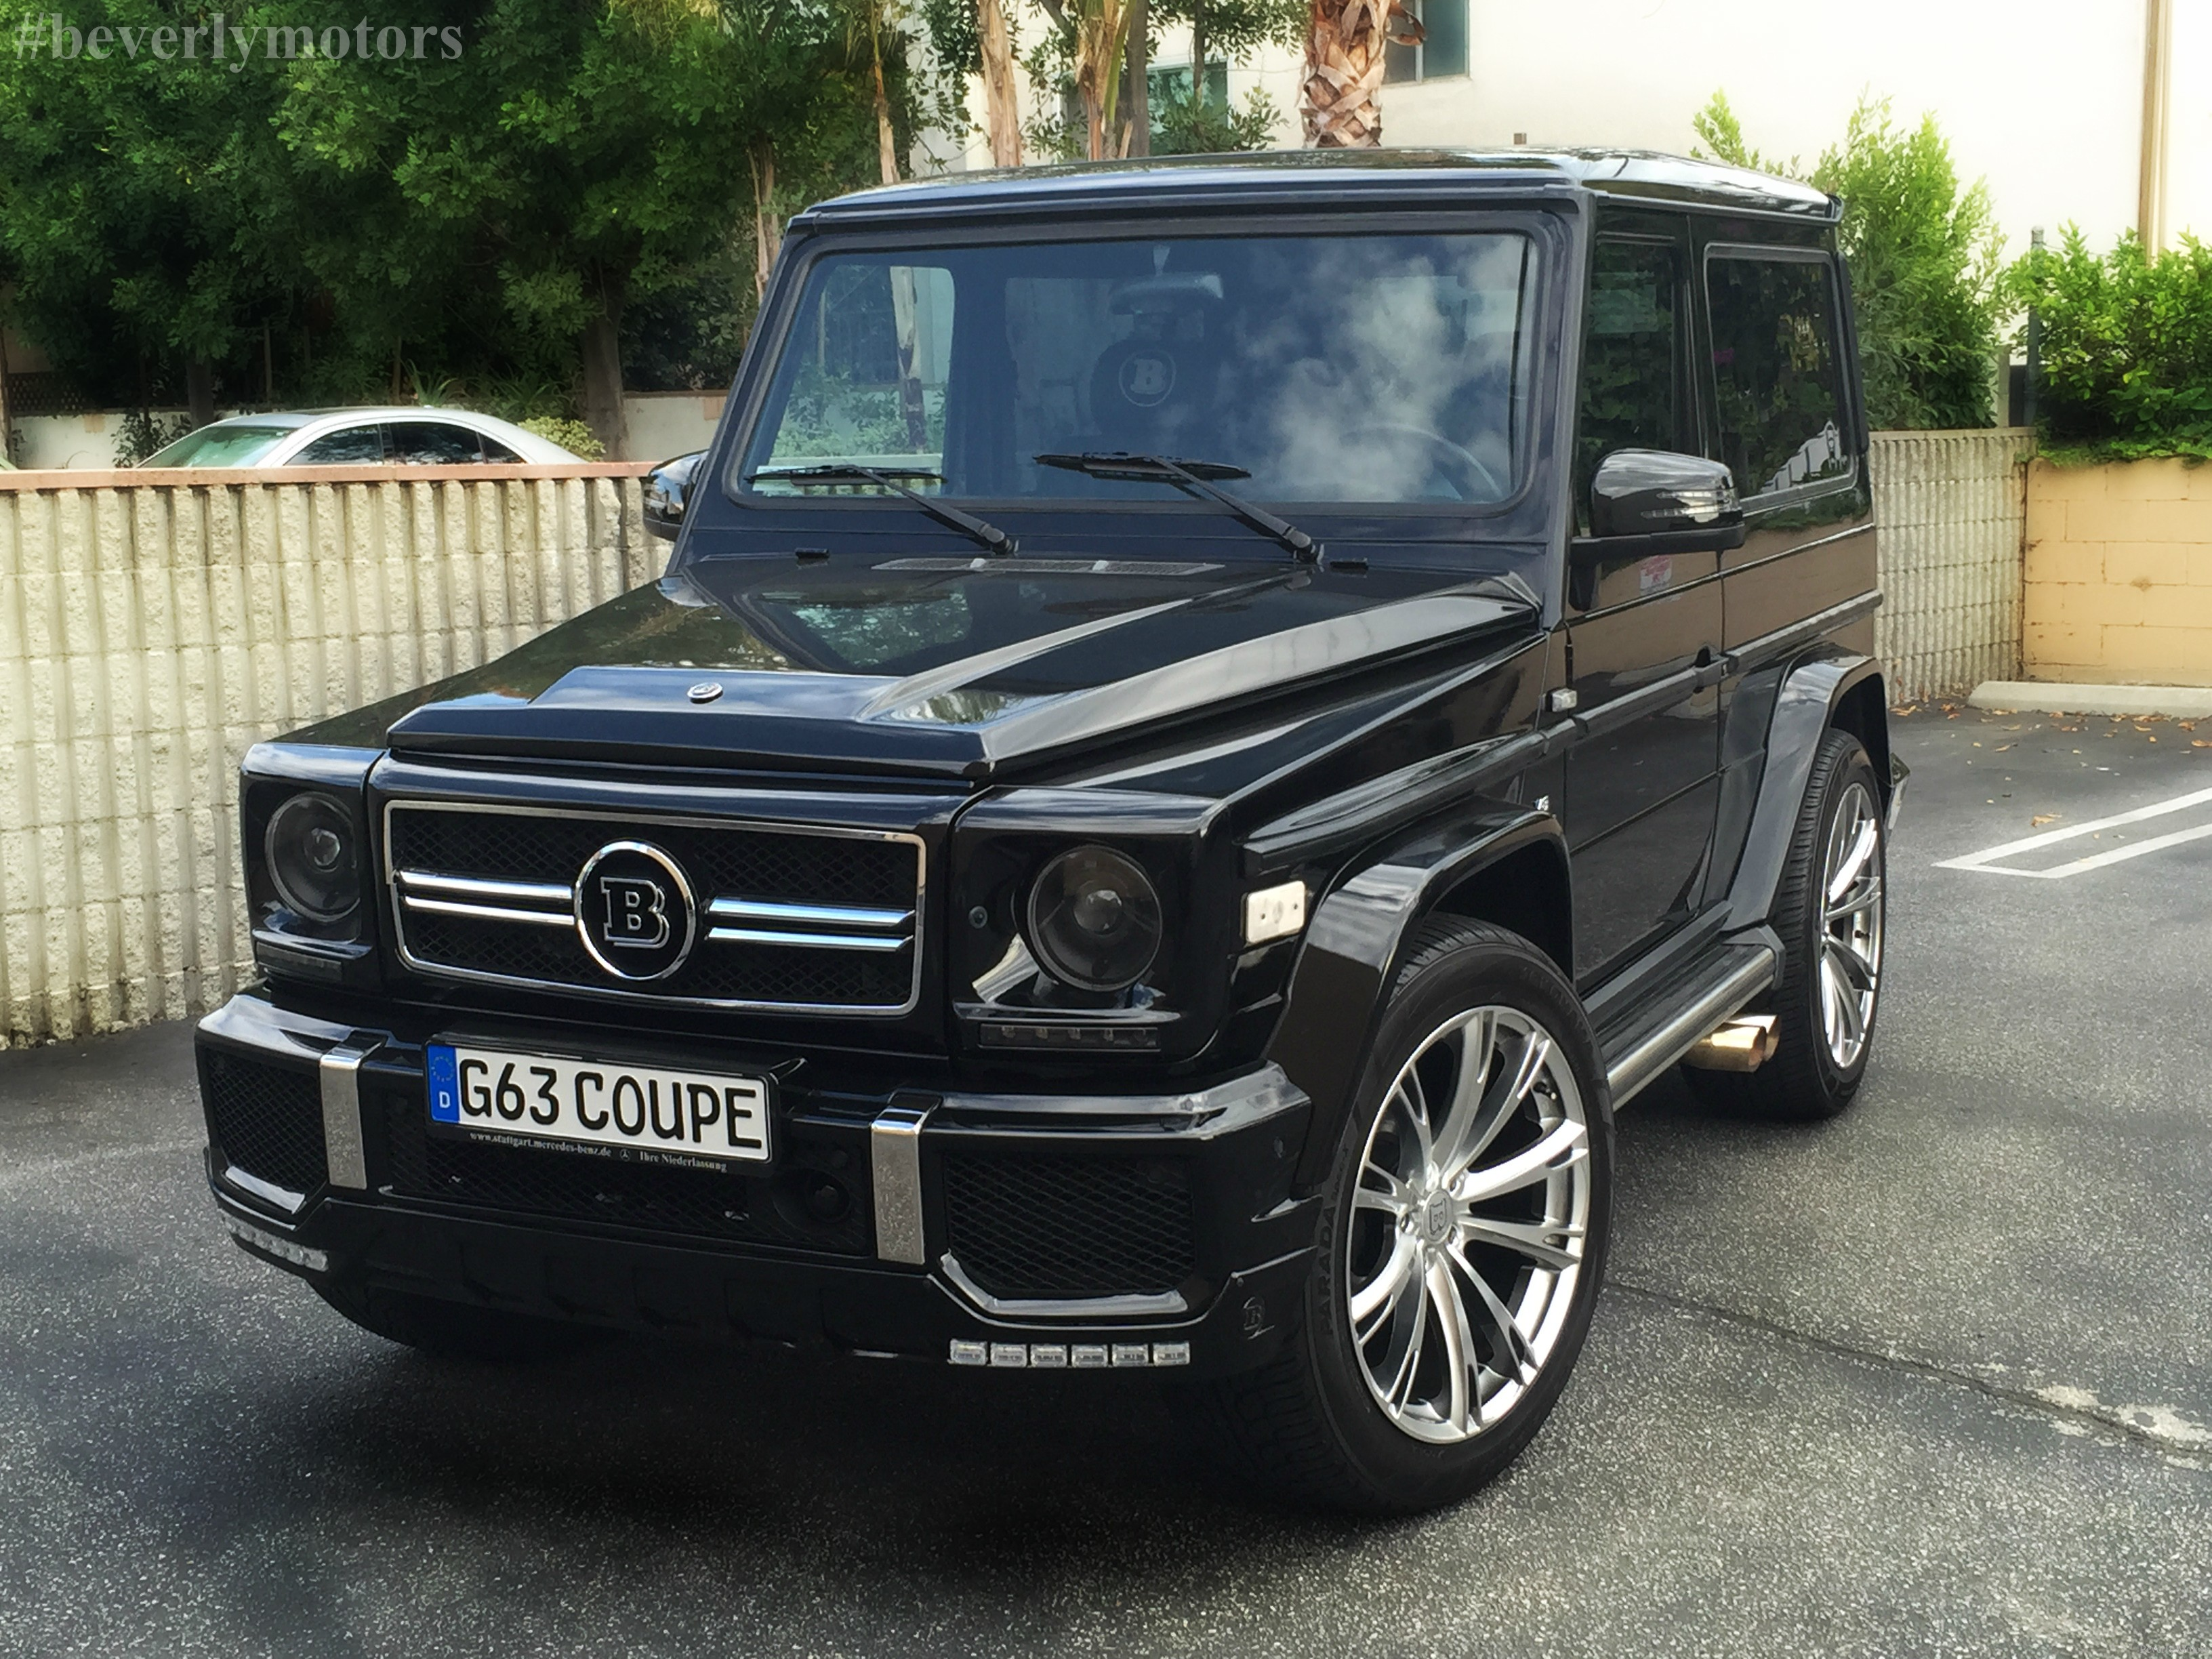 Beverly motors inc glendale auto leasing and sales new for Mercedes benz g class brabus